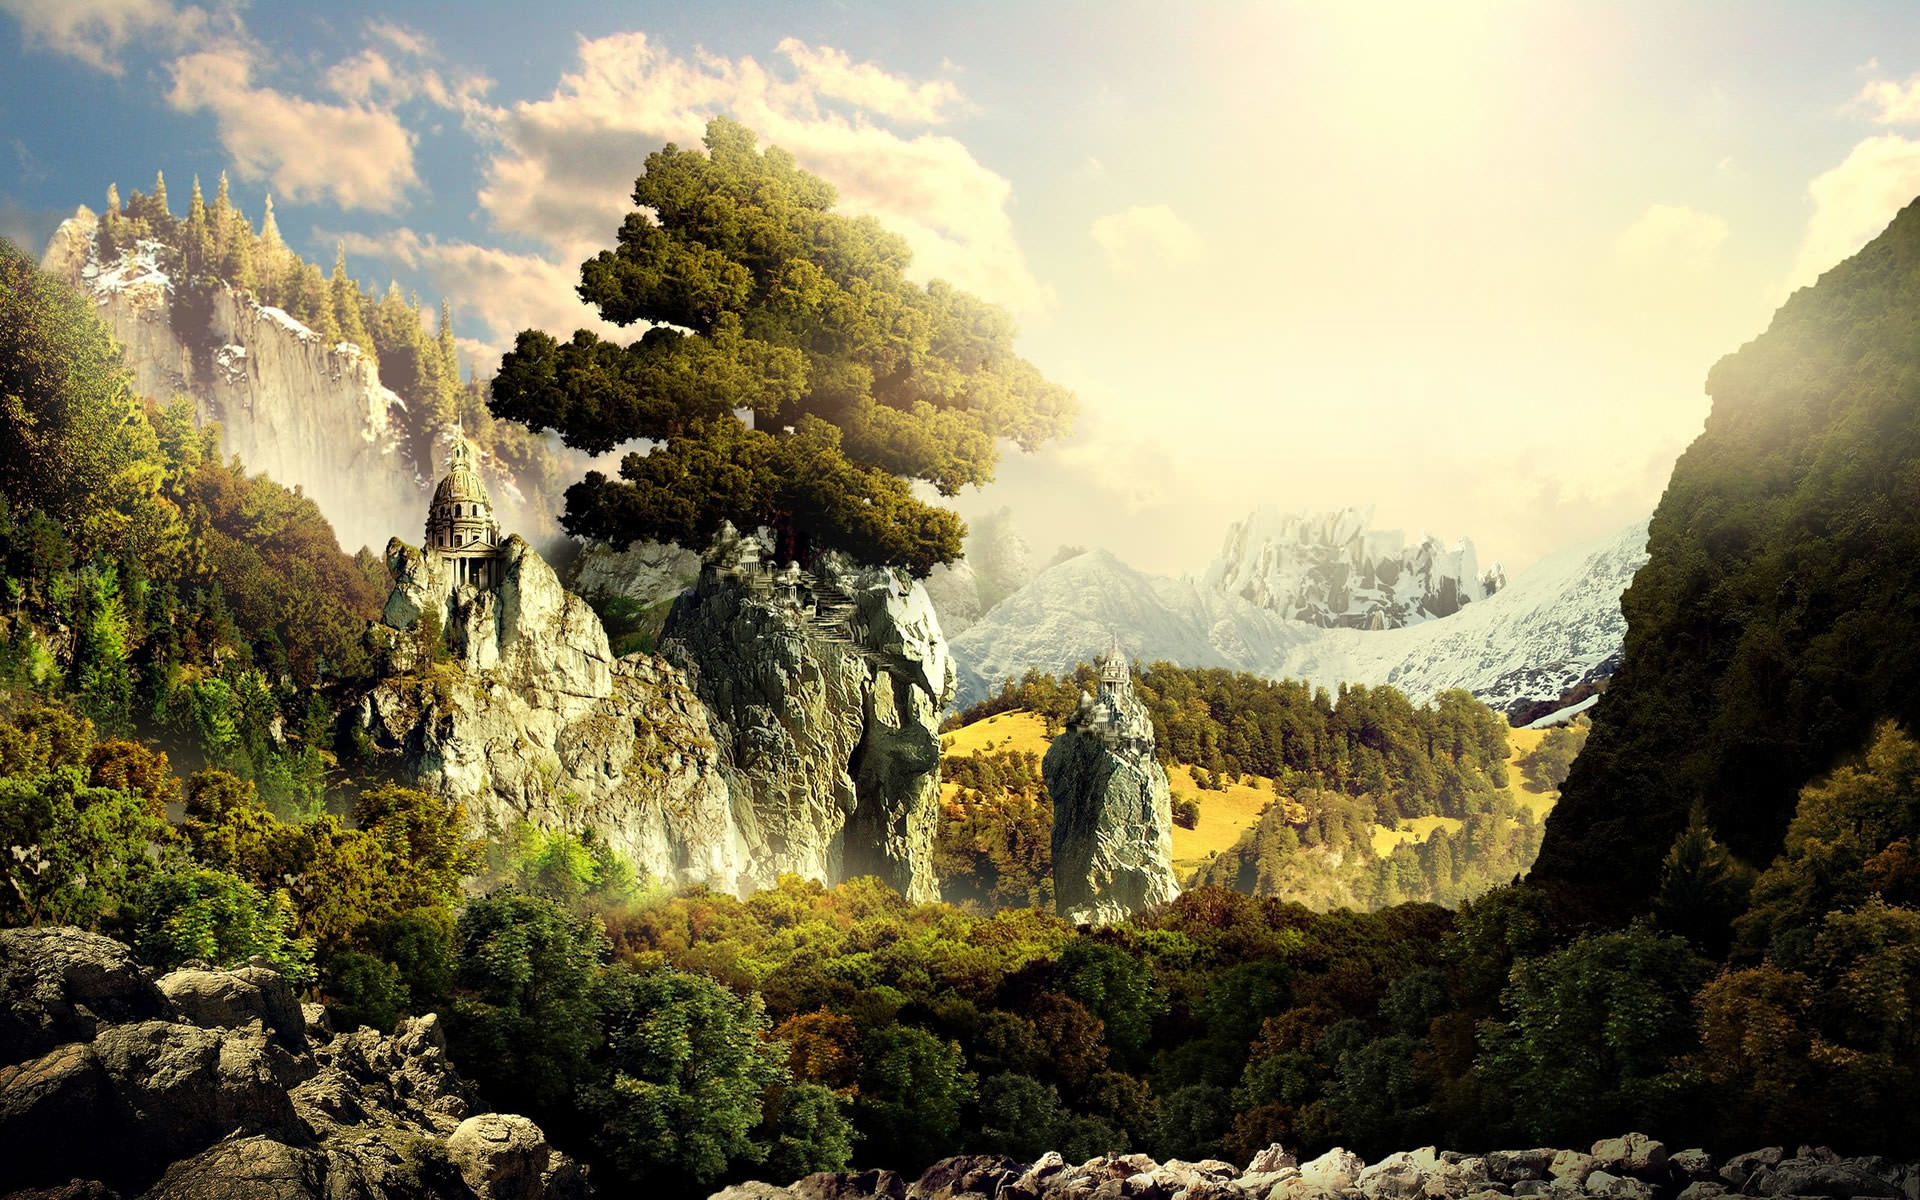 Fantastic Wallpaper Naruto Landscape - 3d-landscape-wallpaper-1920x1200-1001019  Collection_23488.jpg